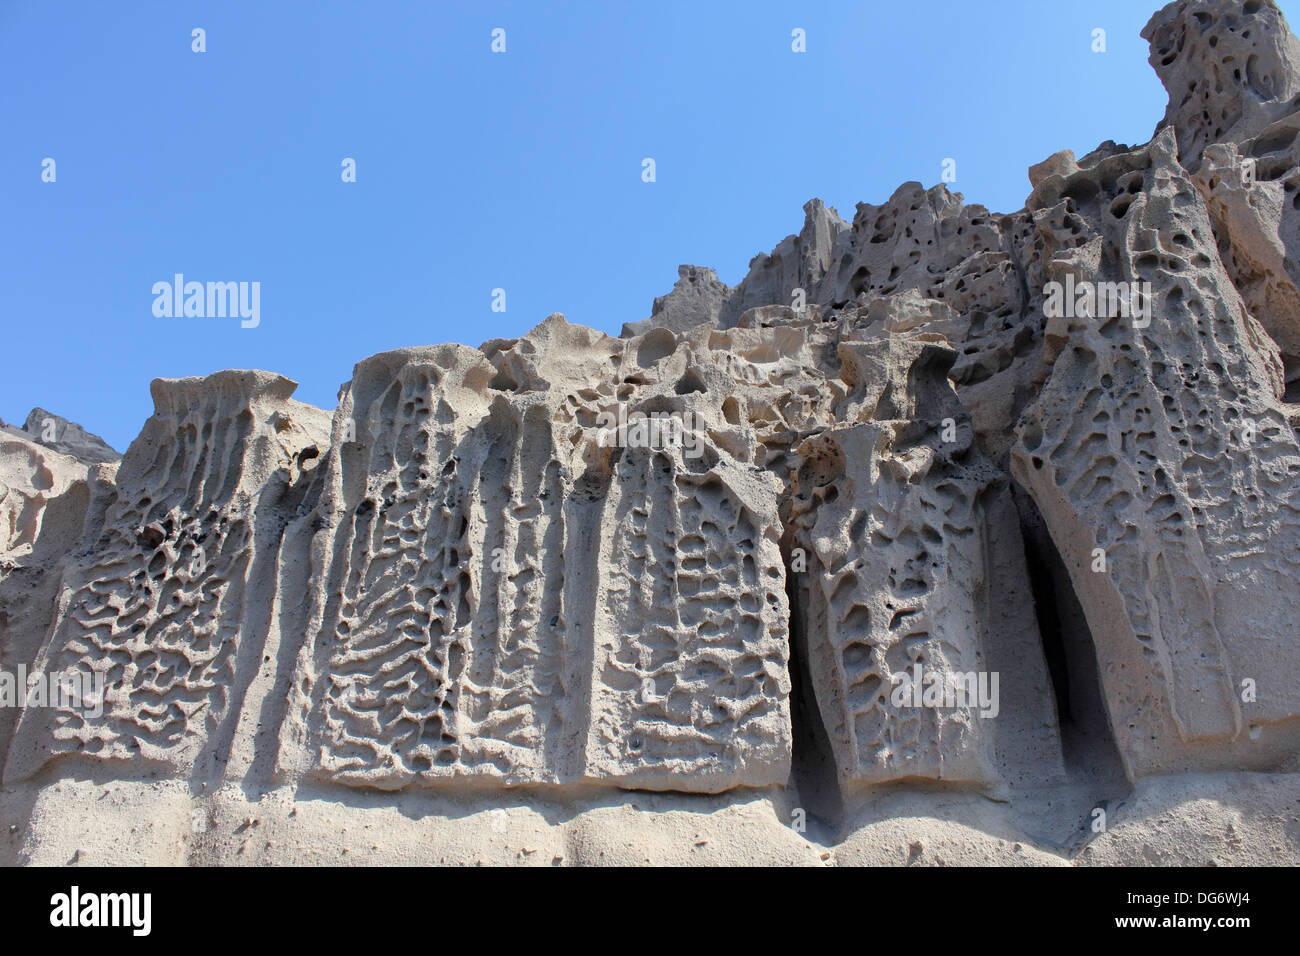 Pumice cliffs eroded by the wind - Vlychada, Santorini - Stock Image